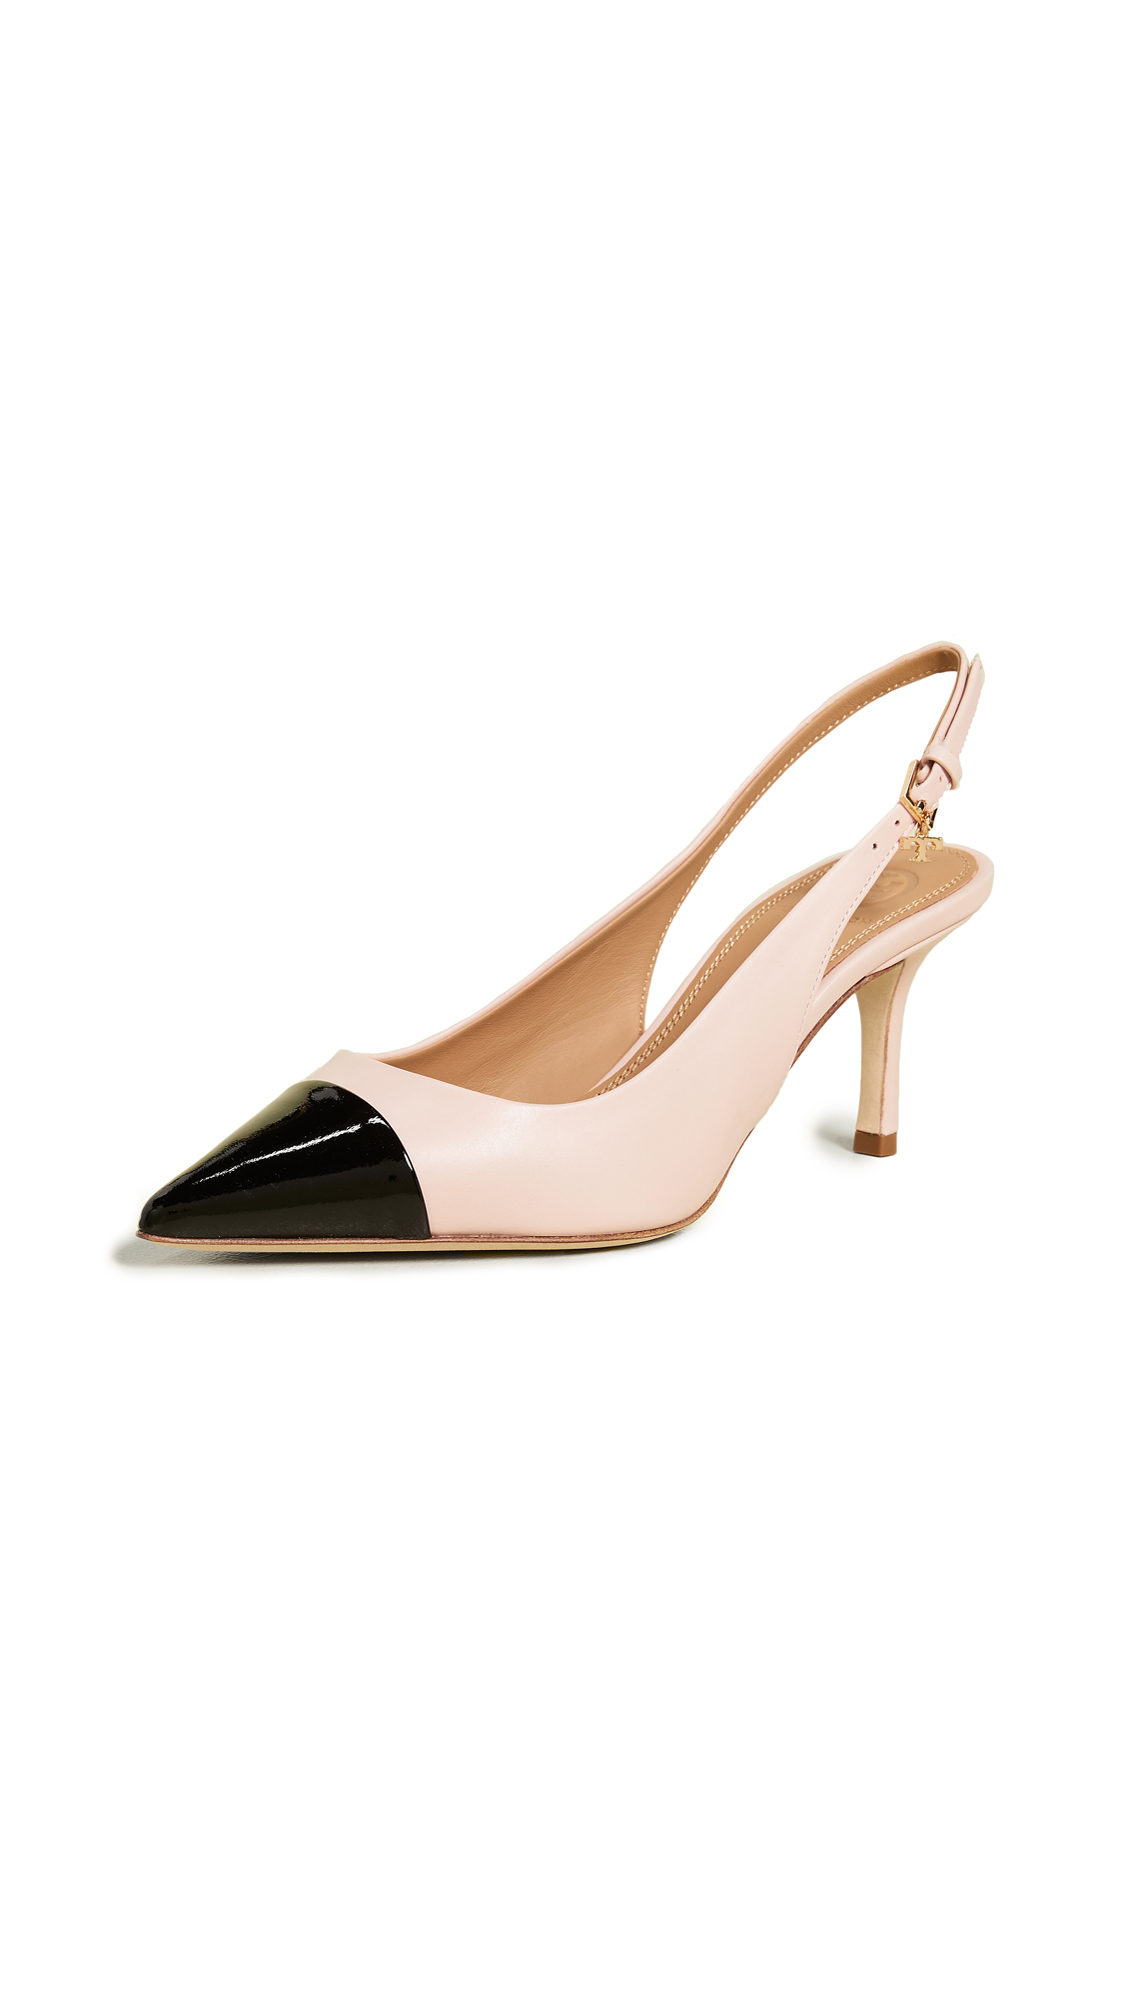 Tory Burch Penelope 65mm Cap Toe Slingback Pumps - Sea Shell Pink/Perfect Black